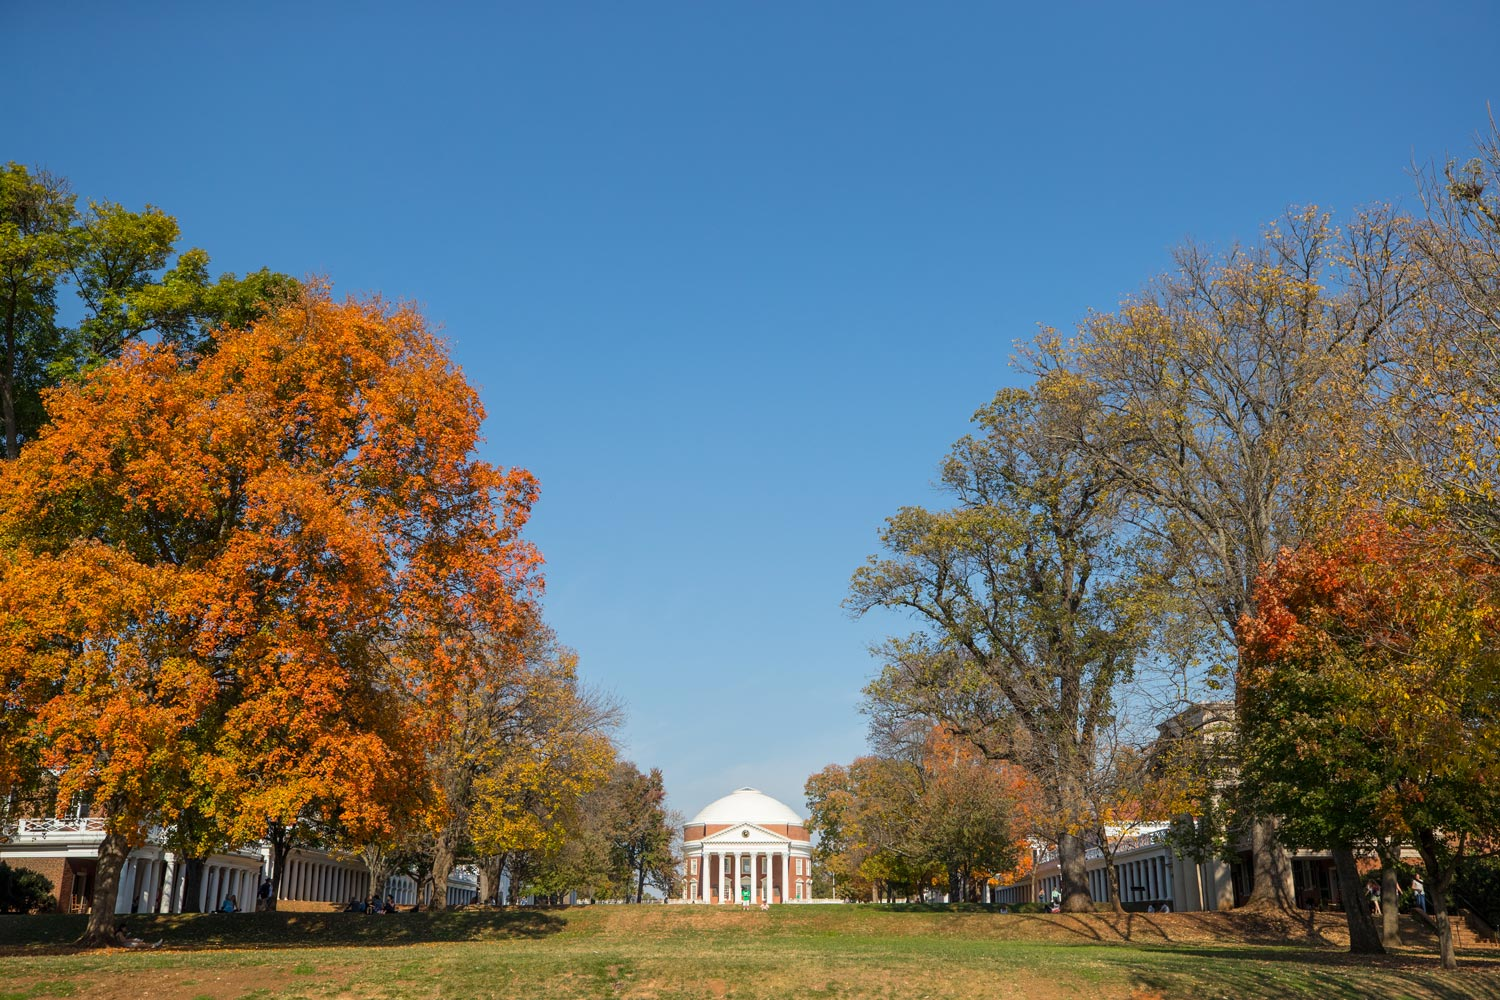 Accolades: Governor Honors UVA With Environmental Excellence Award